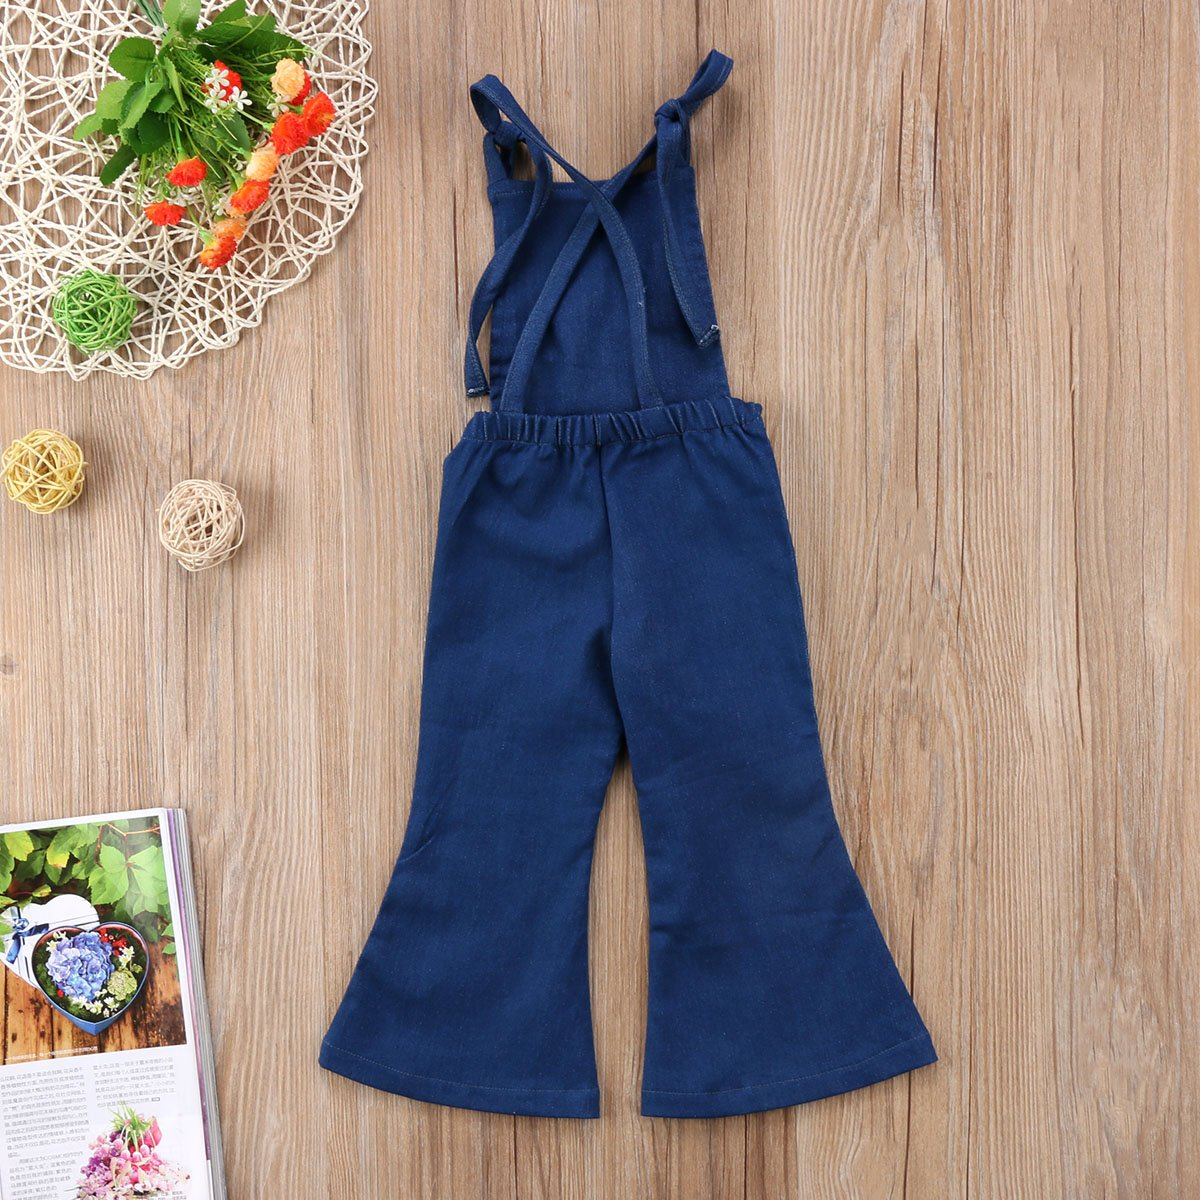 2171fbd55d53 Amazon.com  Baby Girls Little Kids Suspender Overall Flared Denim Jeans  Jumpsuit Bell Elastic Blue Pants  Clothing